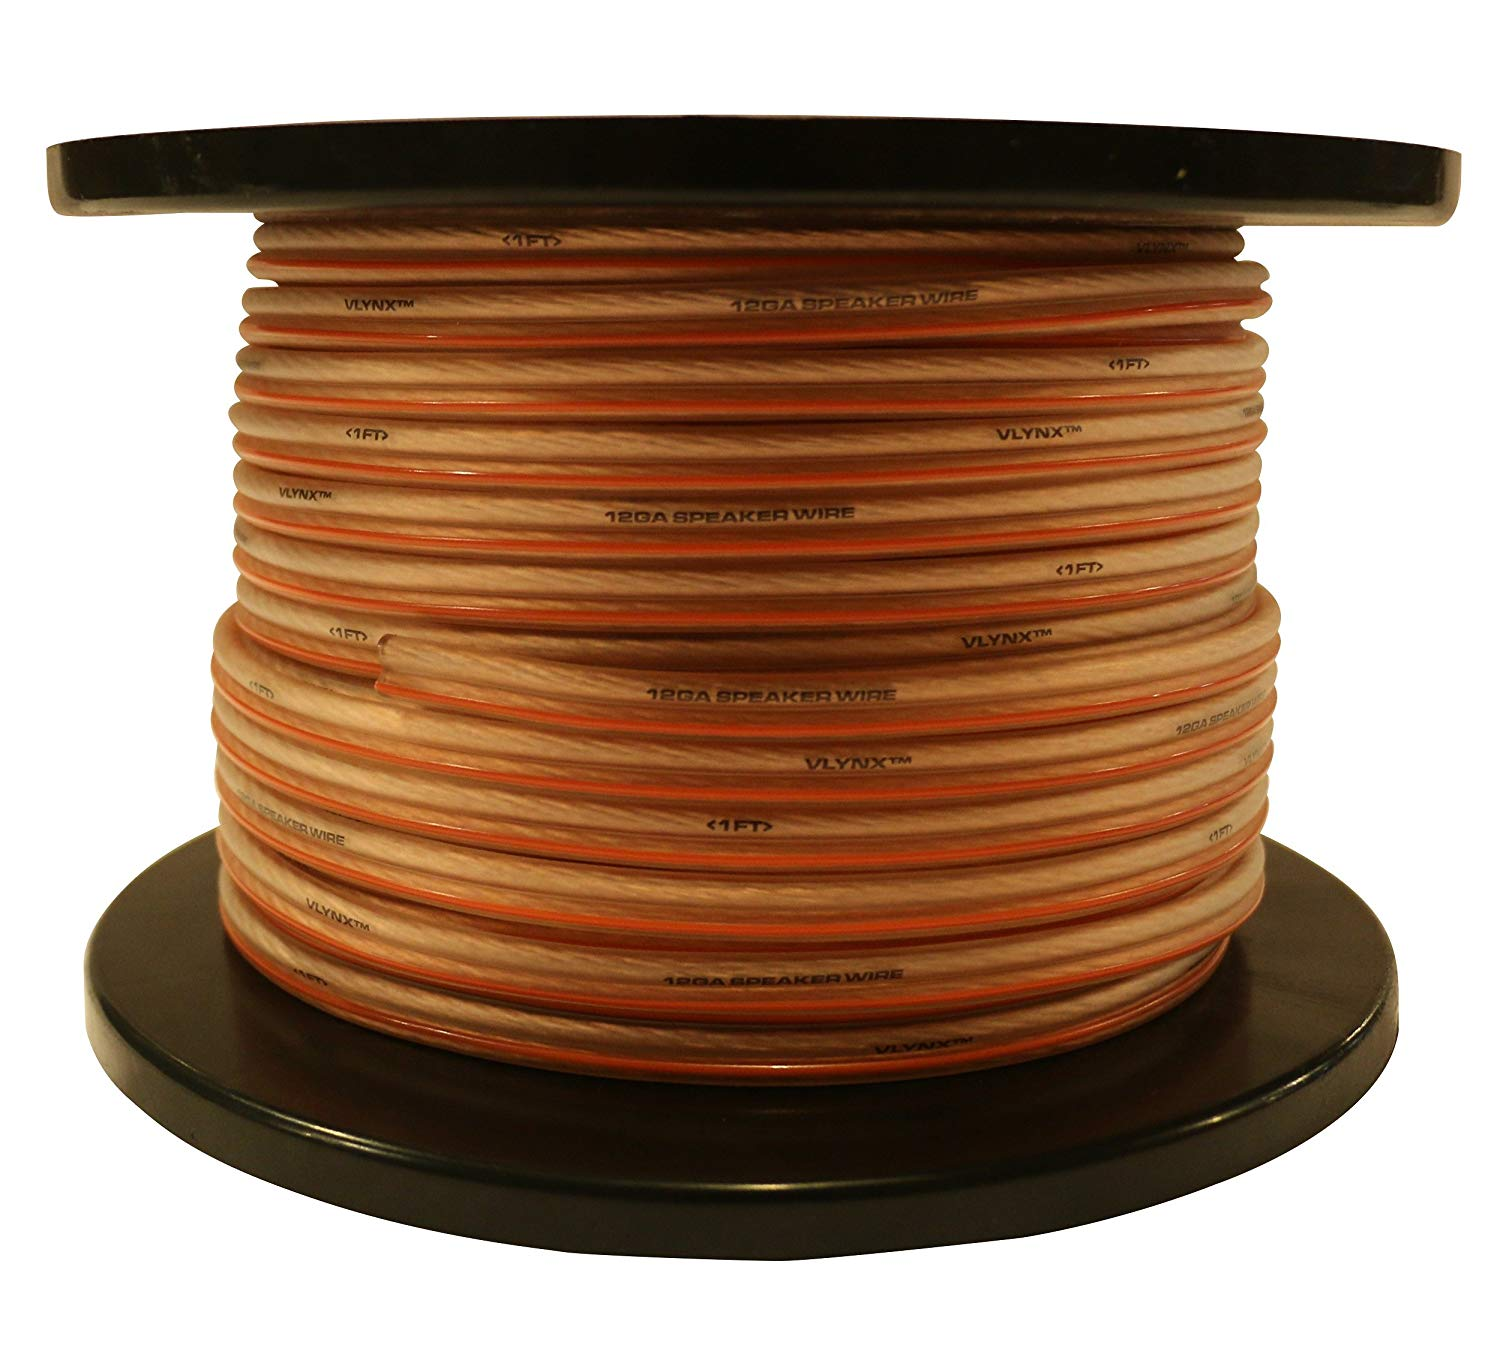 12Ga - 400ft (2 x 200ft) VLYNX Premium 12 Gauge 400 Feet True 12AWG Vlynx Speaker Cable Wire., Flexible, 12AWG-400' Speaker Cable Spool [Positive (+) is marked with a line]